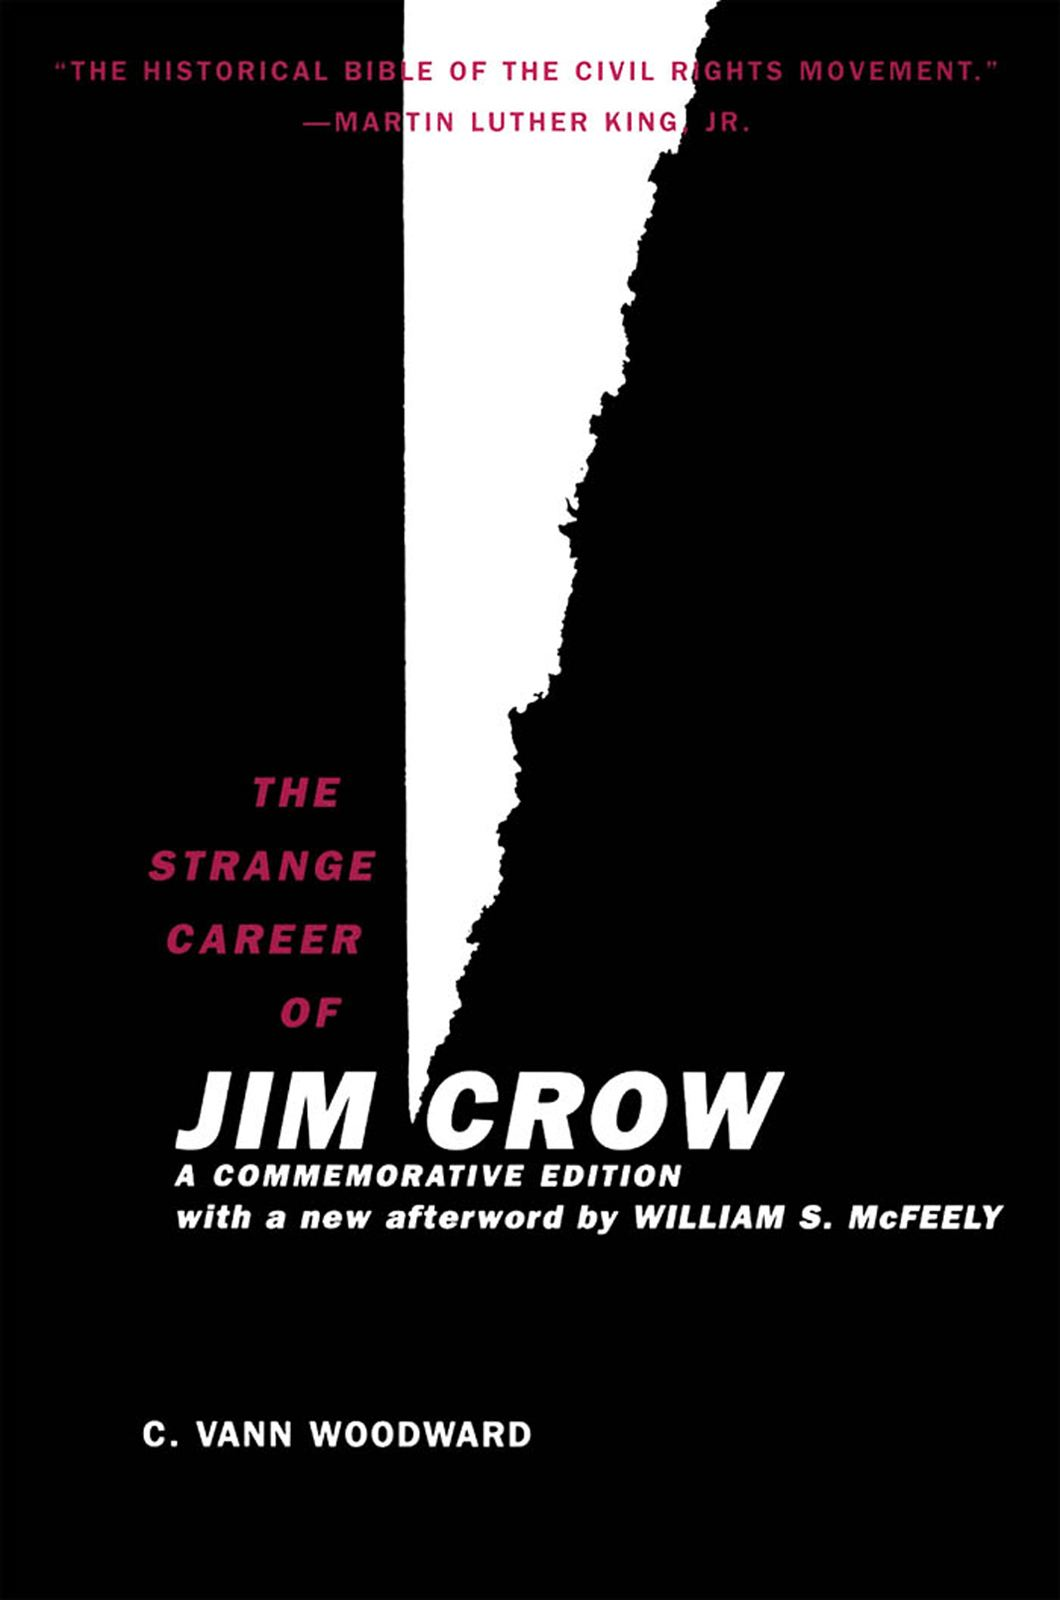 The Strange Career of Jim Crow